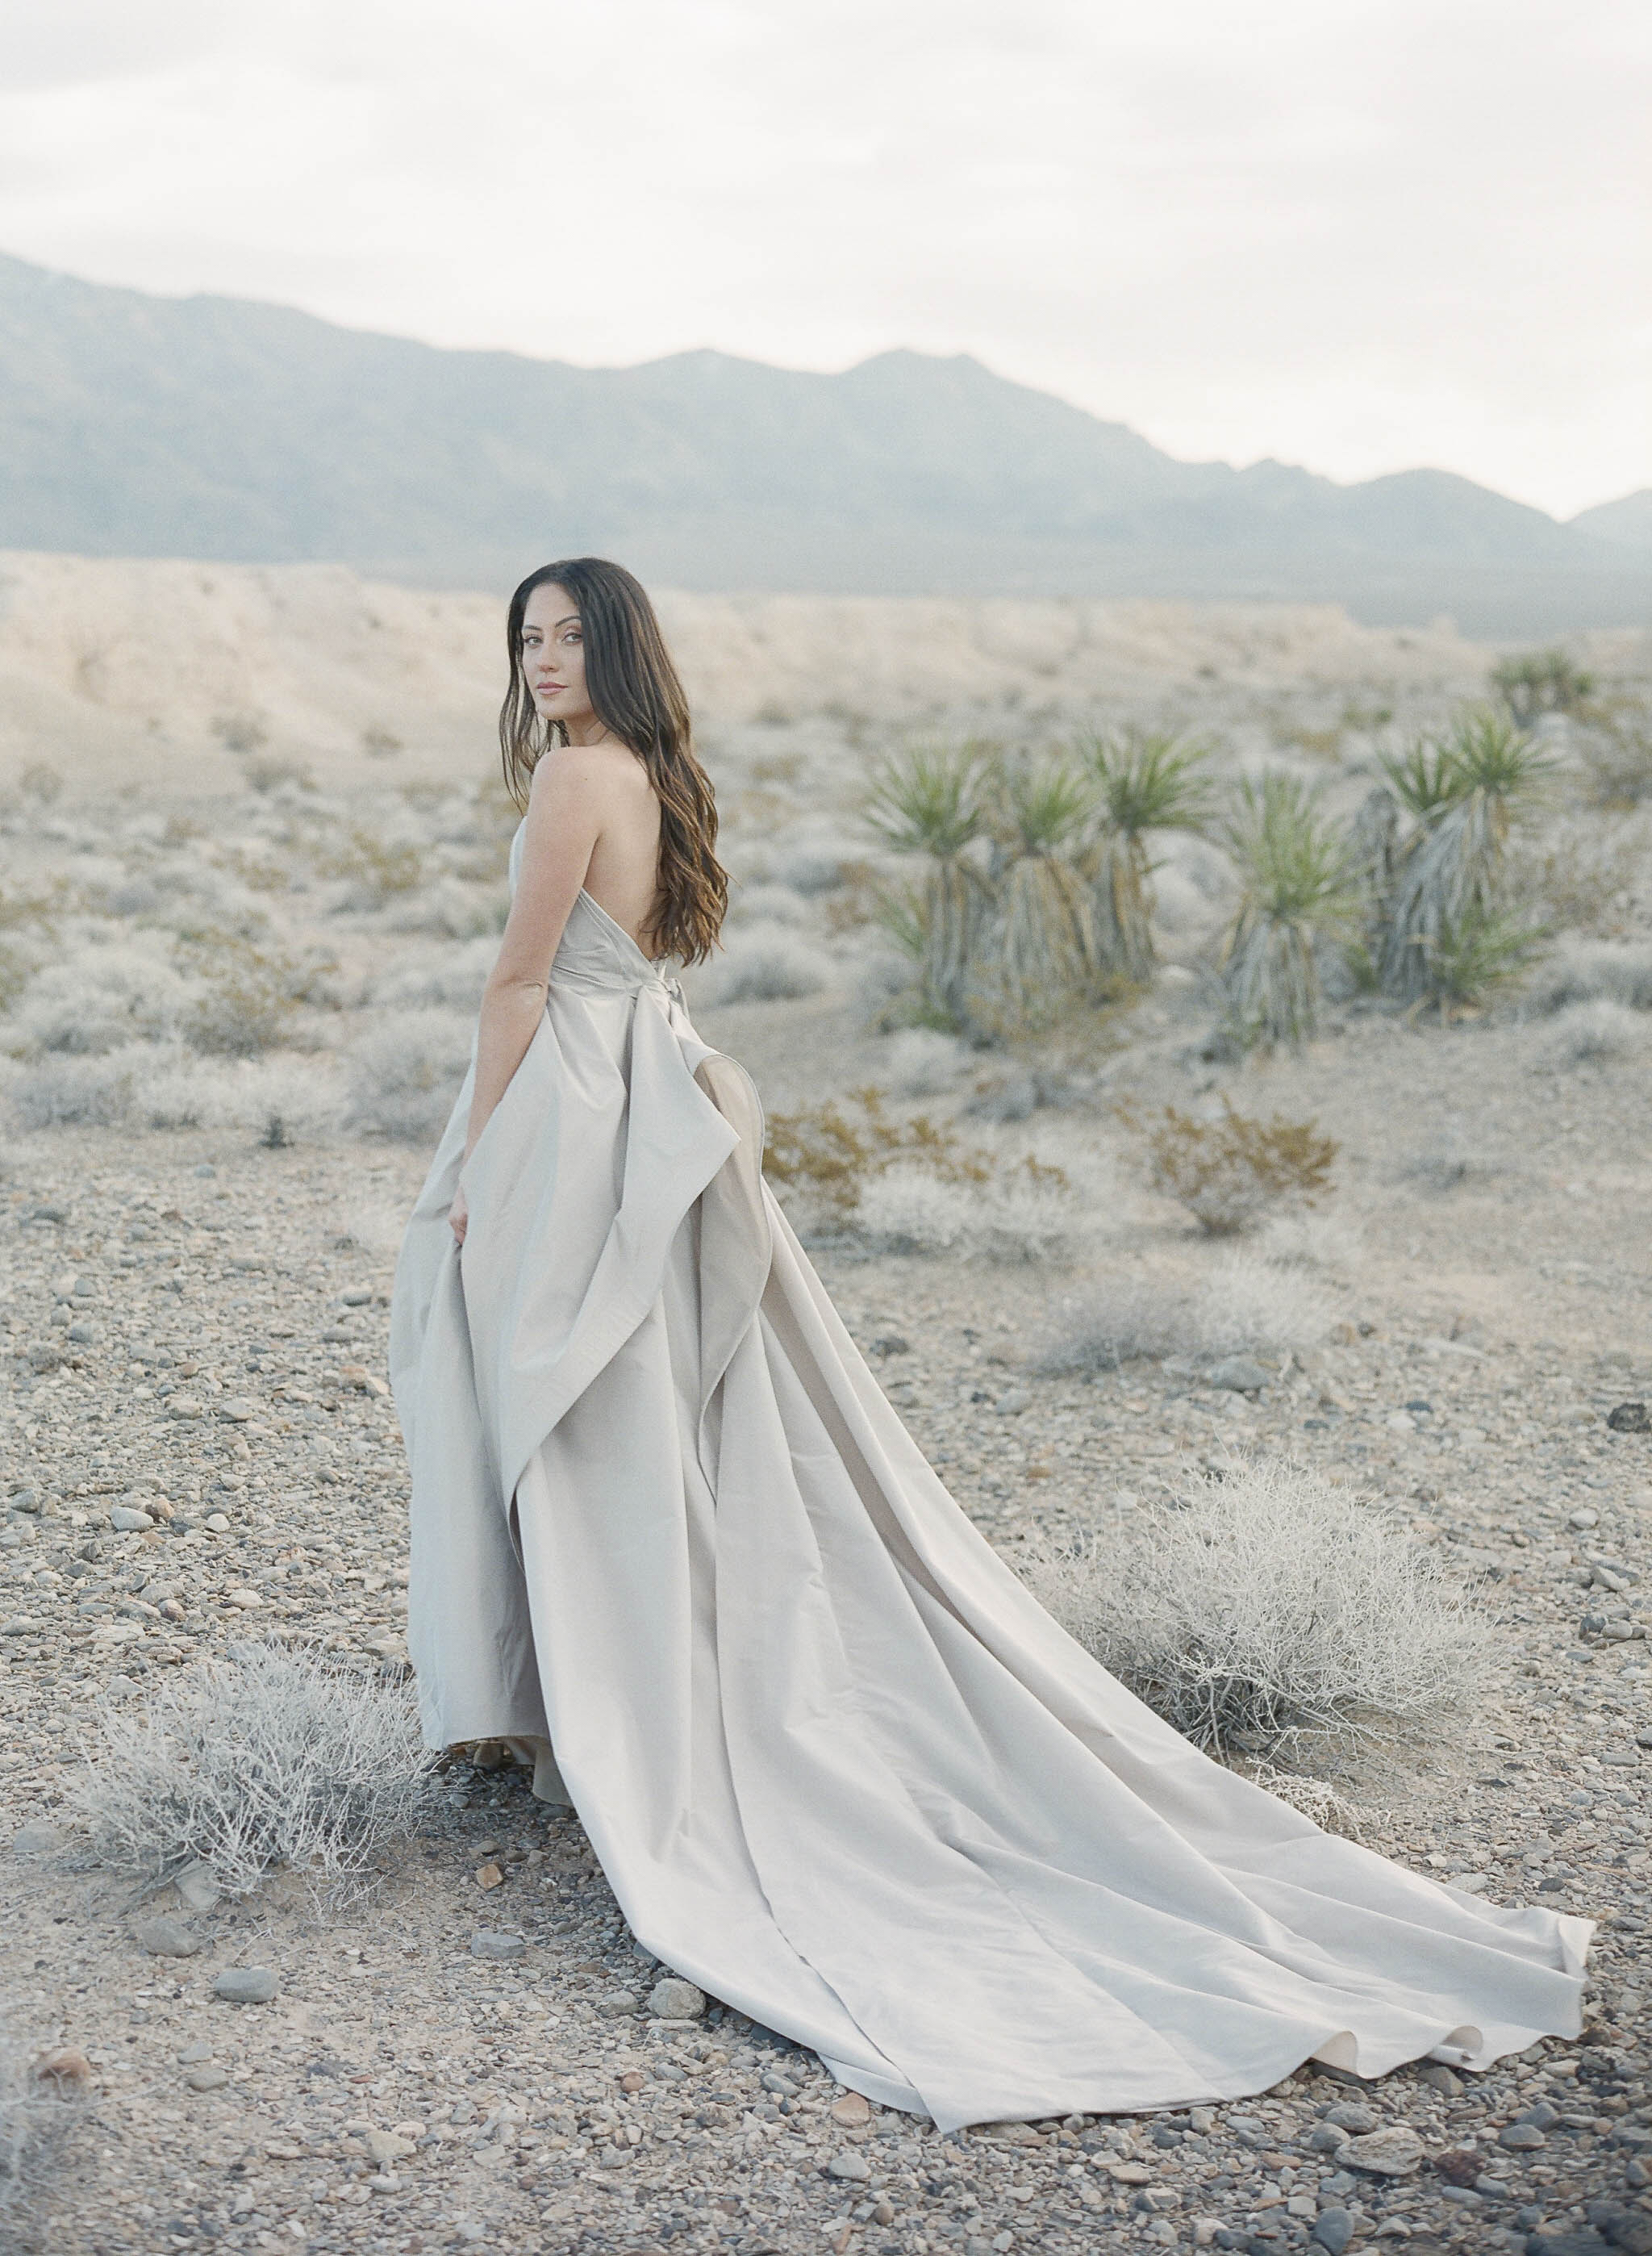 silver wedding gown with back drape 5.JPG